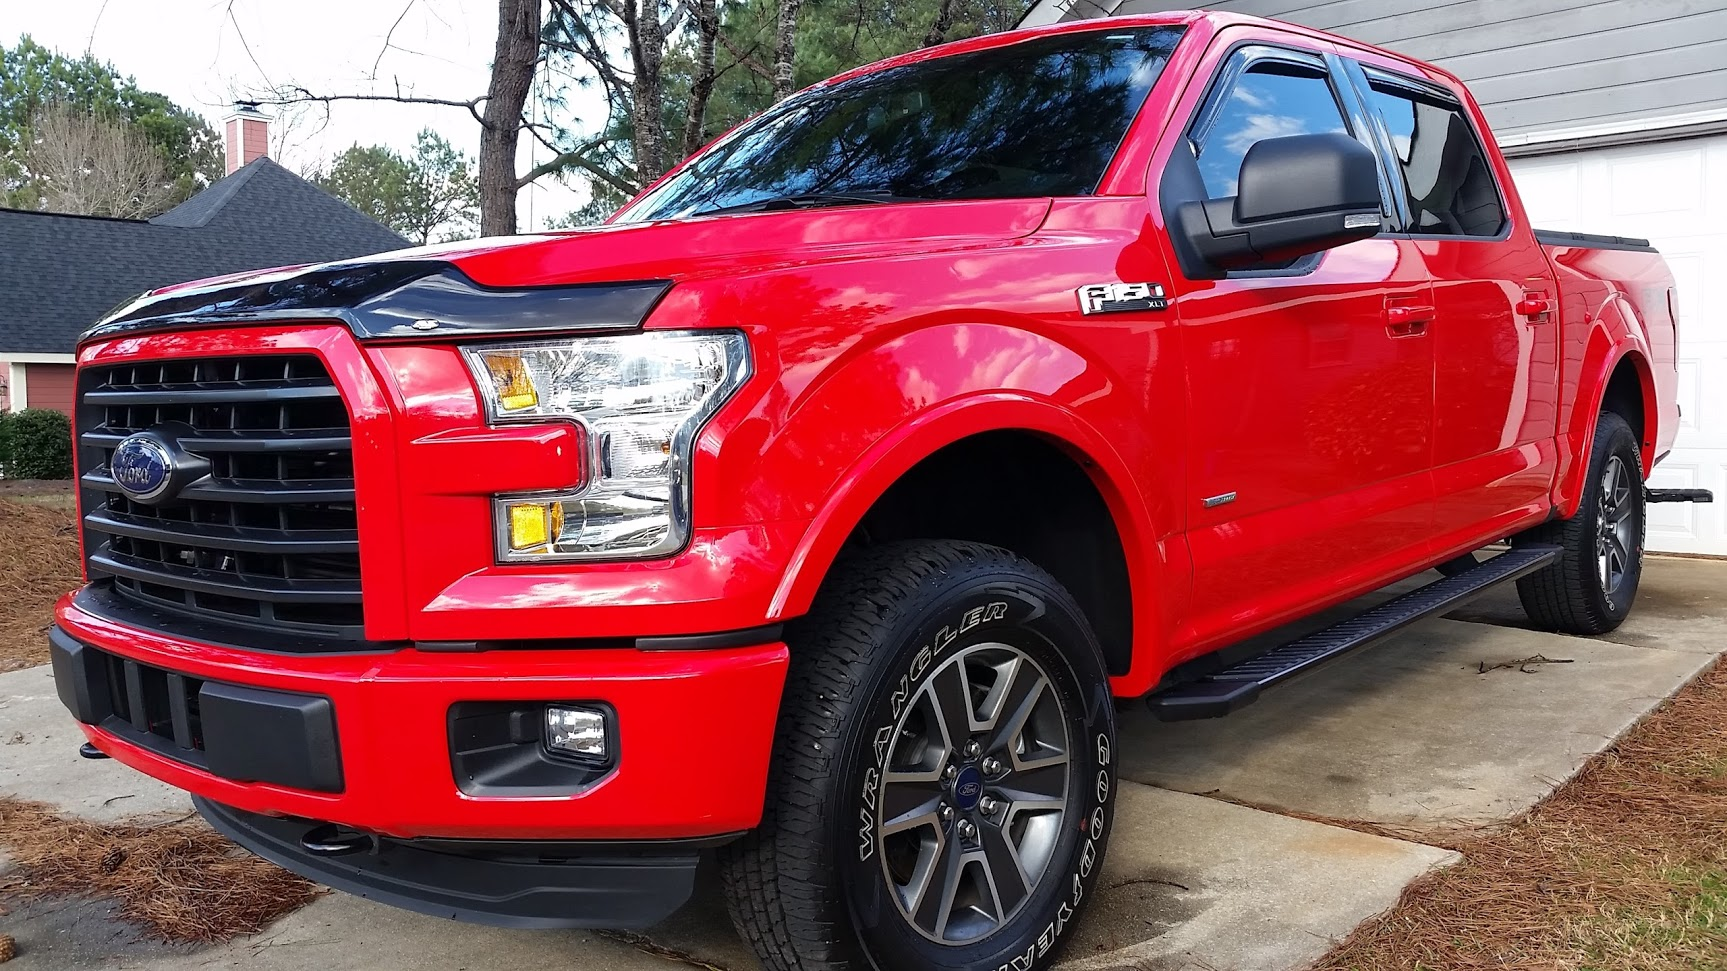 Race Red F150 >> Bug deflector - Page 2